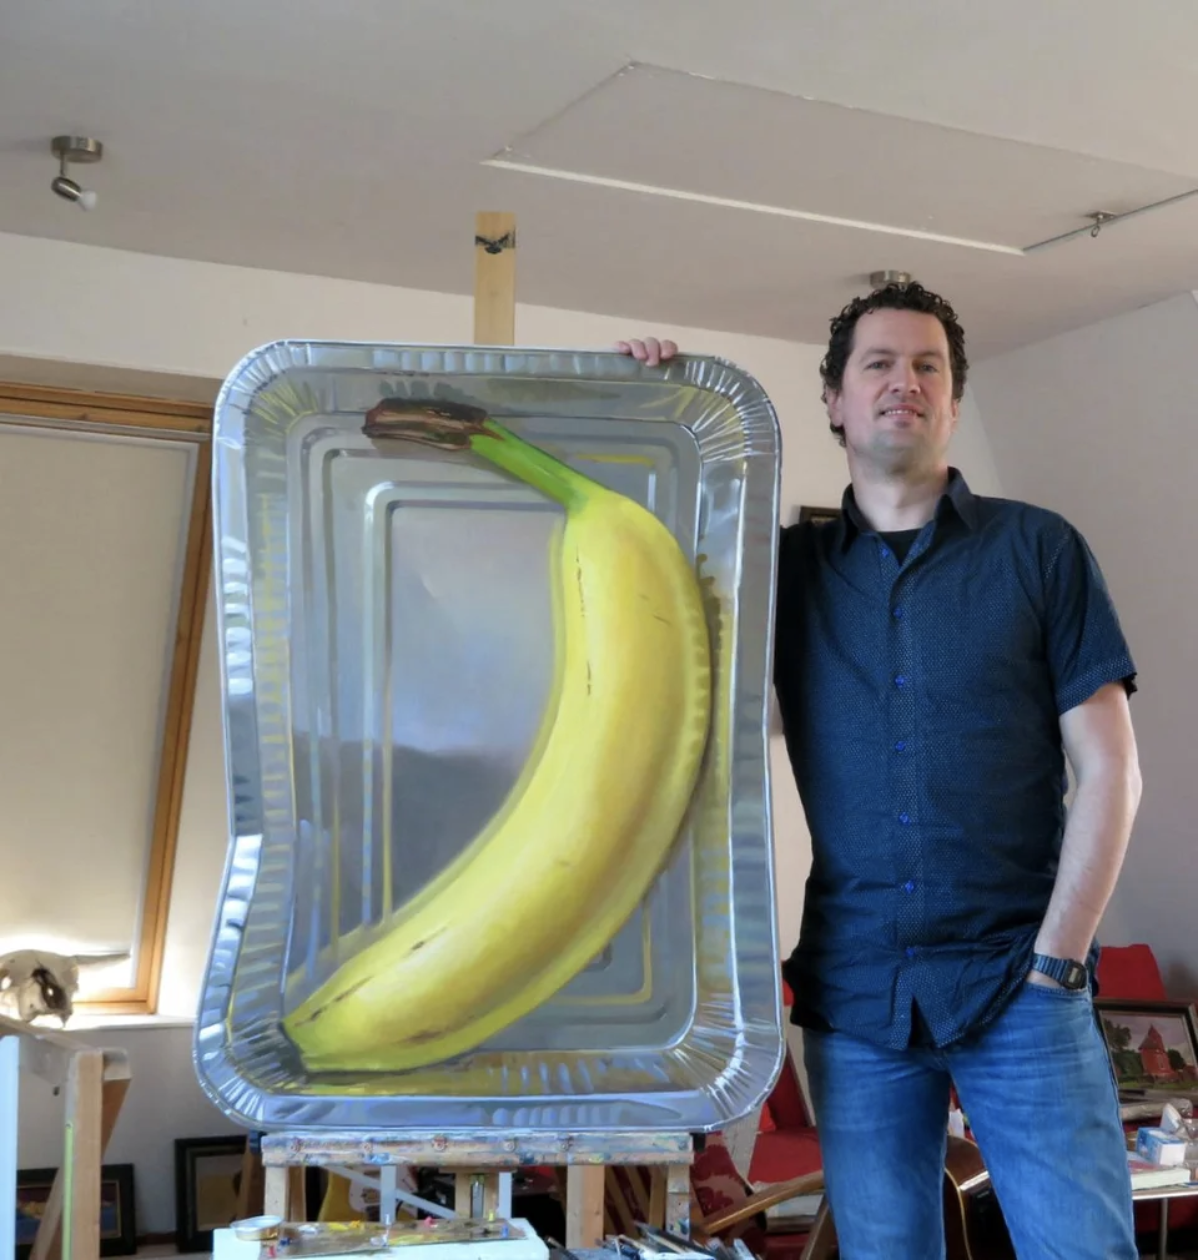 A man has painted a huge banana into a pan and it looks very real